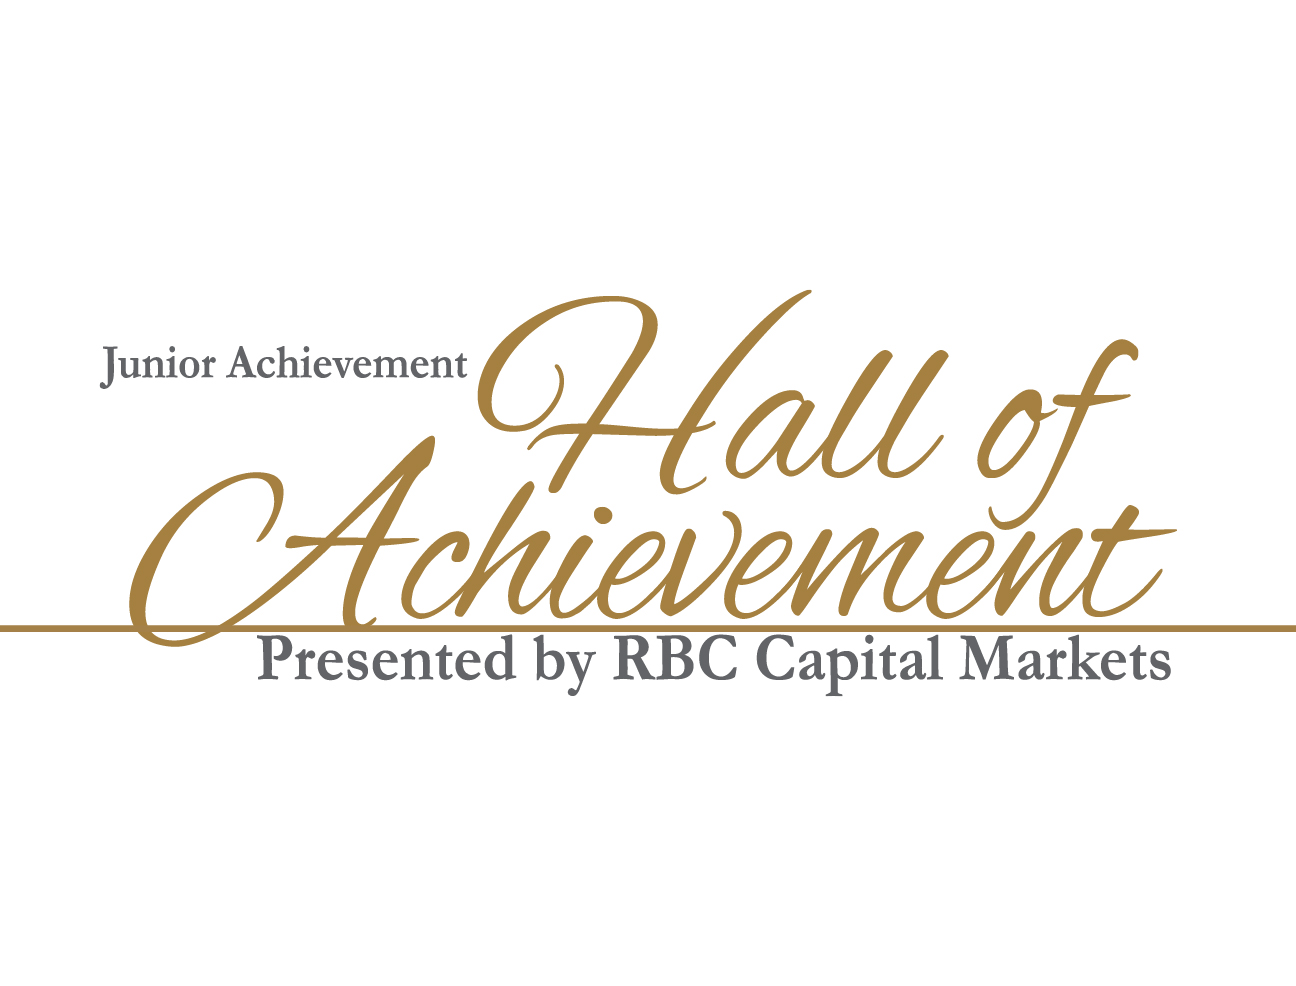 2018 JA Hall of Achievement presented by RBC Capital Markets